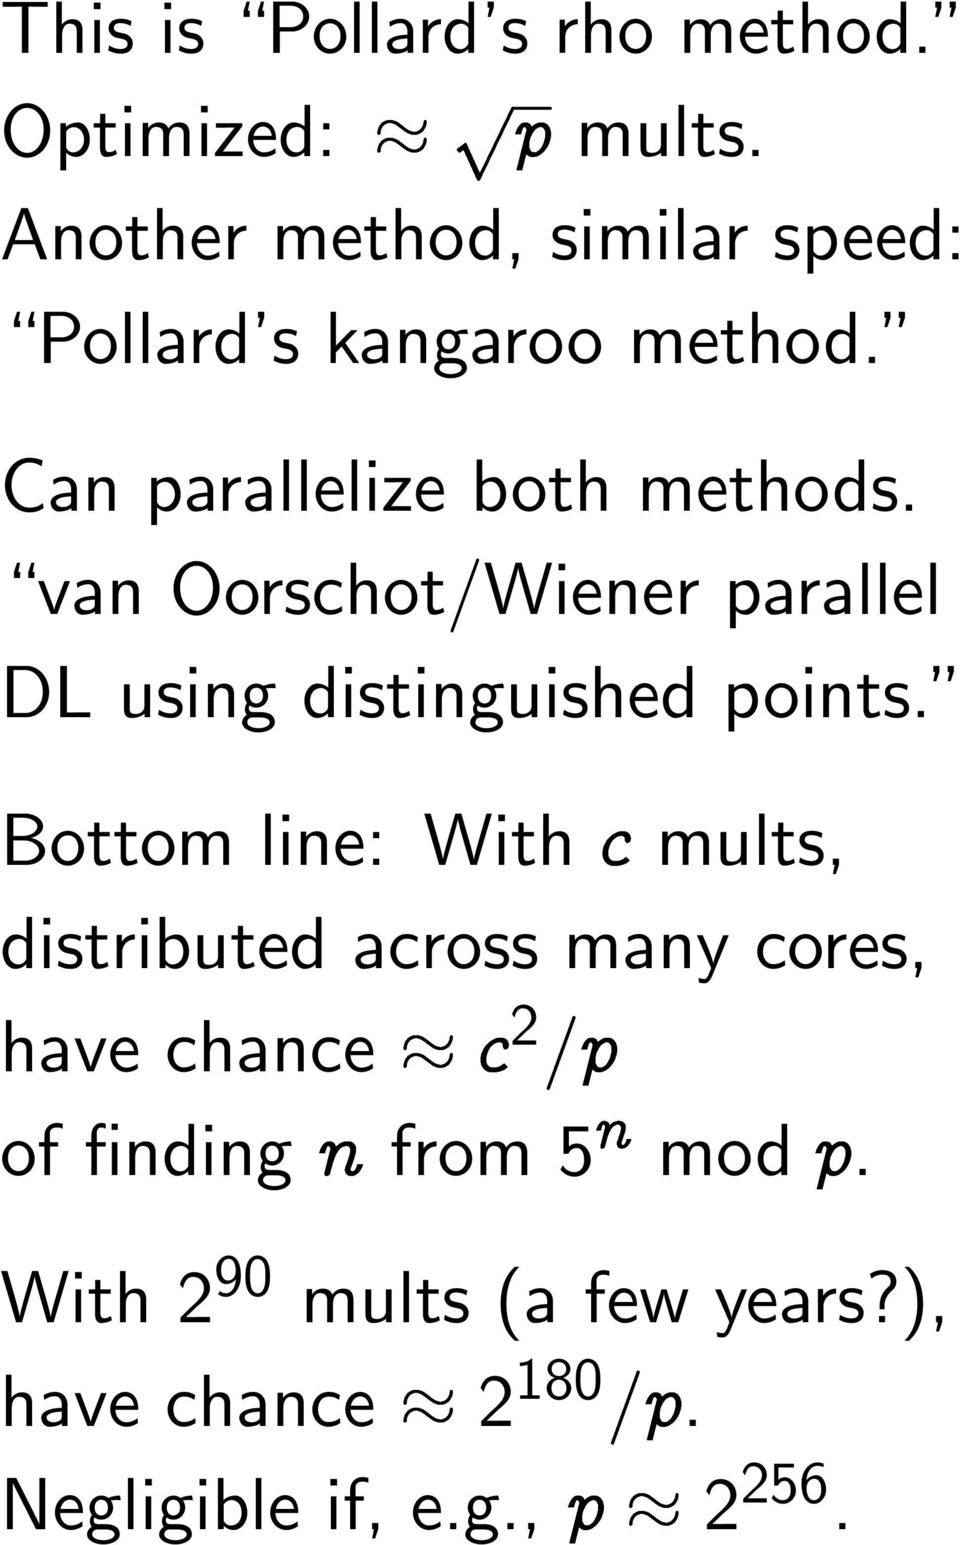 van Oorschot/Wiener parallel DL using distinguished points.